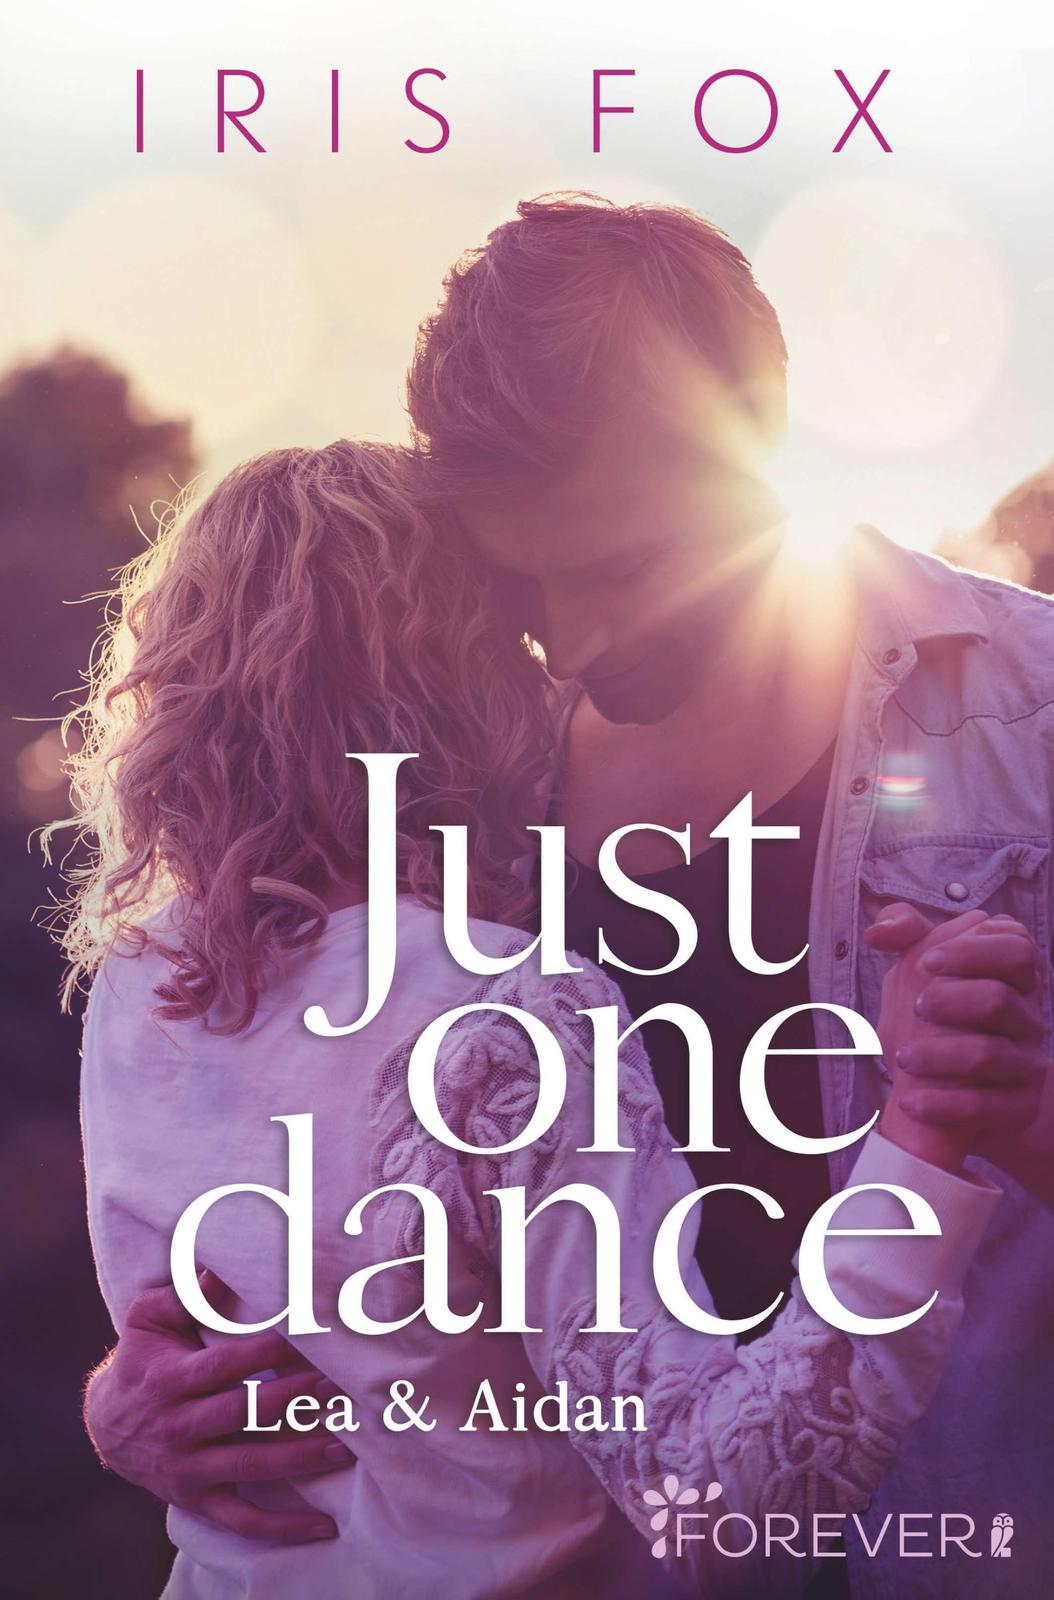 Cover: Just one dance - Lea & Aidan (Iris Fox)